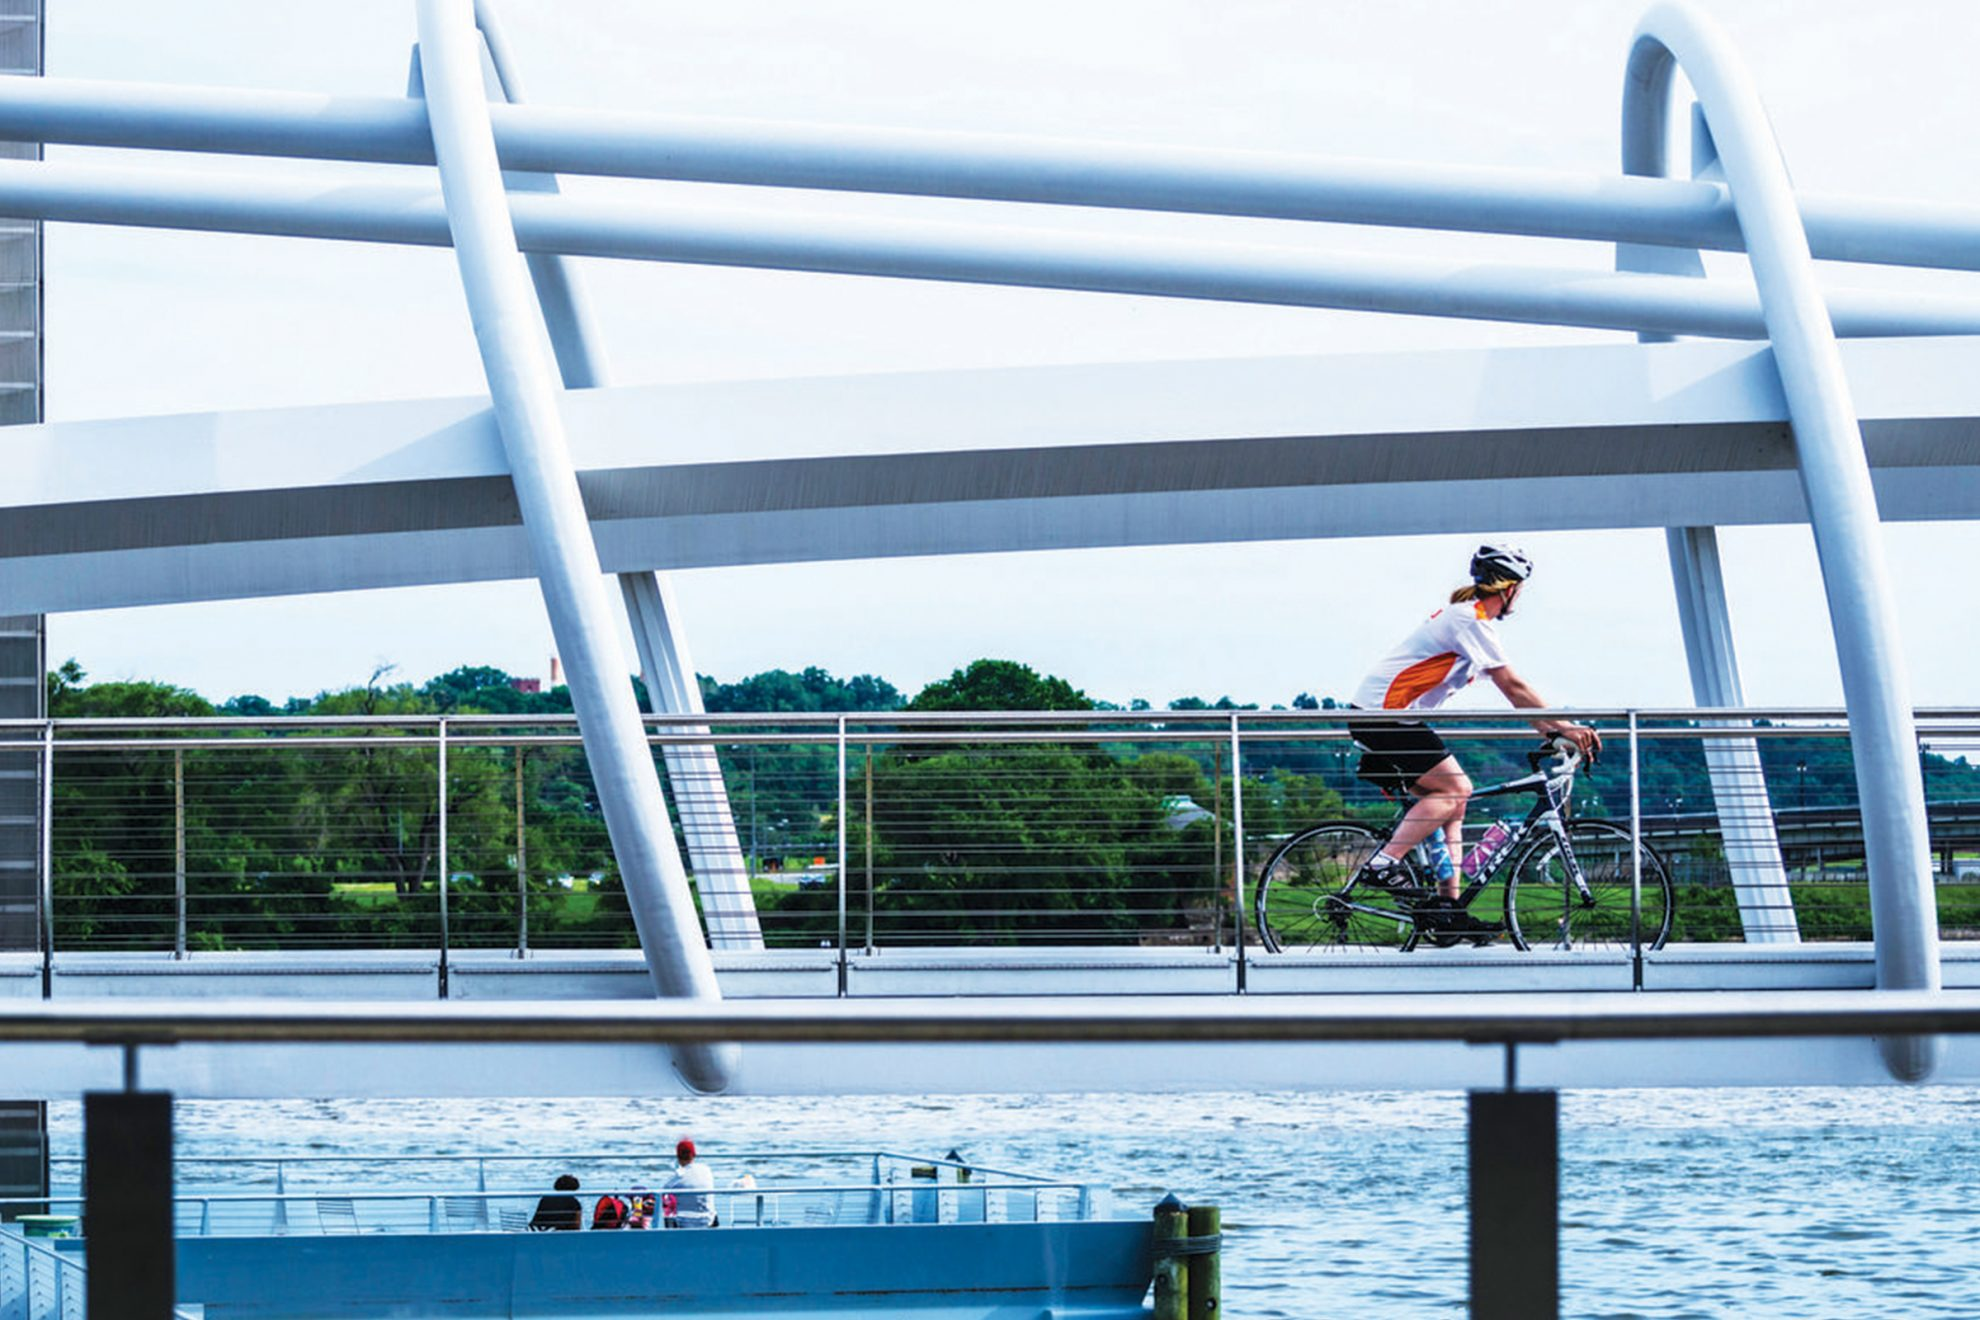 woman on bicycling riding over bridge crossing Anacostia River